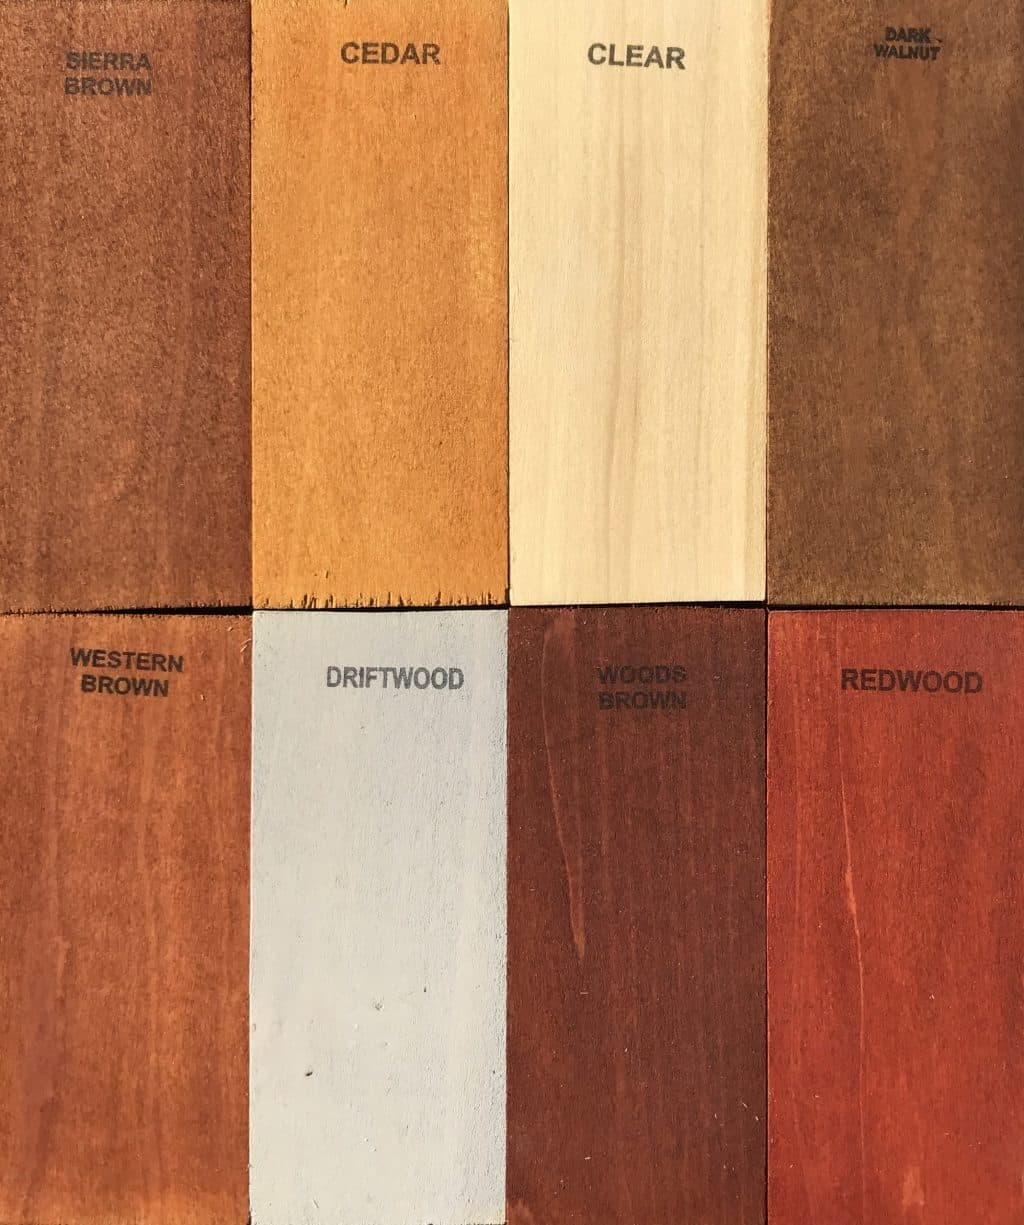 Wet Wood Semi Transpa Tung Linseed Oil Stain Colors